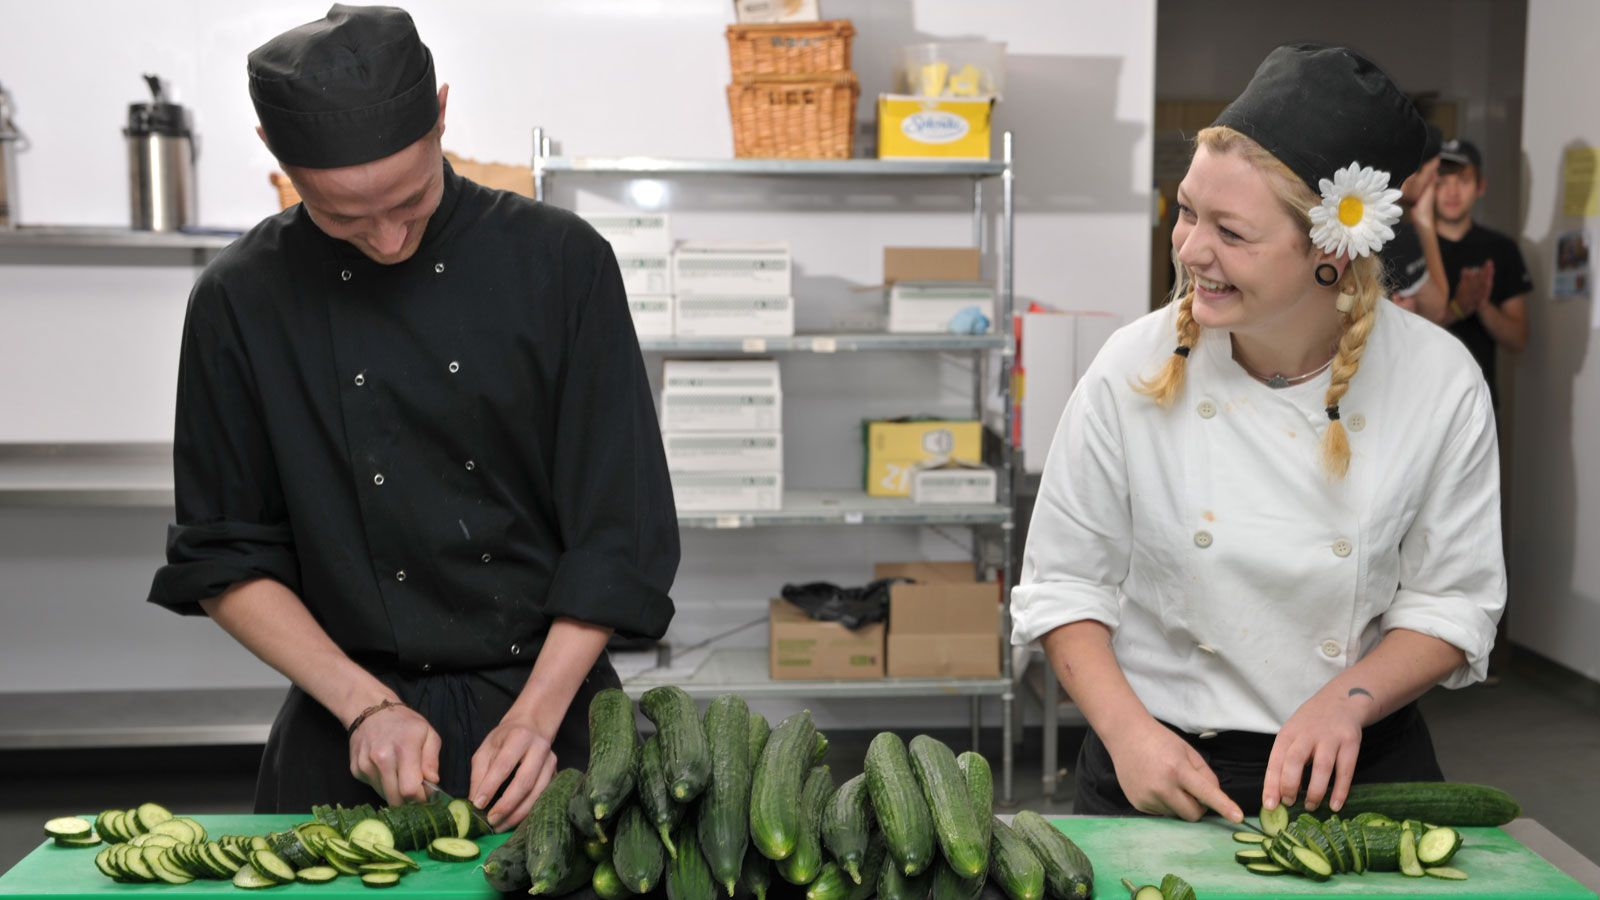 Assistant chef for Assistant cuisine